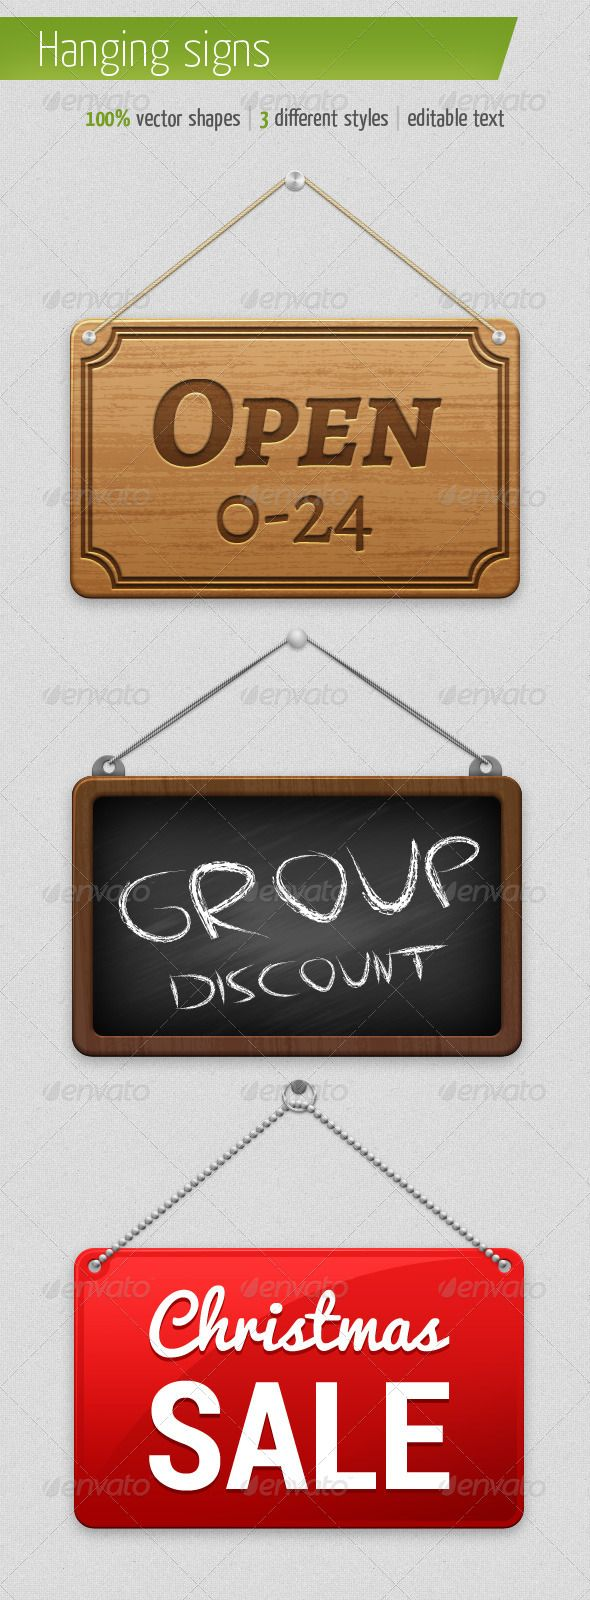 3 Different Hanging Signs #GraphicRiver Multipurpose hanging signs. 100% vector (except some masks), editable, resizable (you can use for printing), can be edited in Photoshop and Illustrator. Organized layers help you to work quickly. Font download links are attached to the file. Created: 5September13 GraphicsFilesIncluded: PhotoshopPSD HighResolution: No Layered: Yes MinimumAdobeCSVersion: CS4 PixelDimensions: 480x440 Tags: board #chalk #chalkboard #discount #frame #hangingsign #metal…